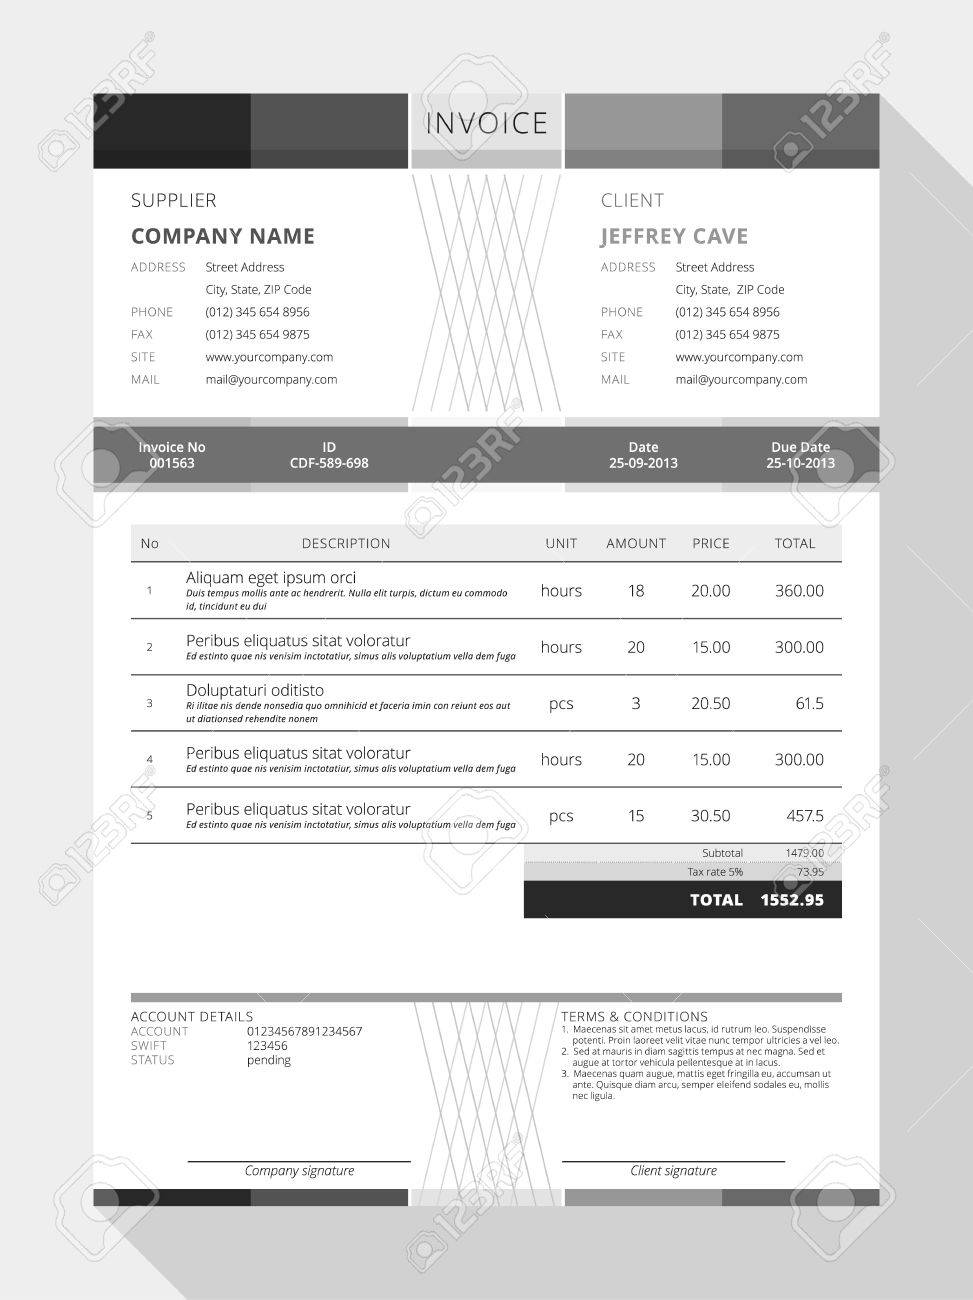 Sandiegolocksmithsus  Personable Design An Invoice  Professional Graphic Design Invoice  With Glamorous Vector Customizable Invoice Form Template Design Vector   Design An Invoice With Beautiful Fill In Invoice Template Also Create An Invoice For Free In Addition Sample Blank Invoice And Paypal Invoice Api As Well As Invoice Templte Additionally Free Online Invoice Forms From Happytomco With Sandiegolocksmithsus  Glamorous Design An Invoice  Professional Graphic Design Invoice  With Beautiful Vector Customizable Invoice Form Template Design Vector   Design An Invoice And Personable Fill In Invoice Template Also Create An Invoice For Free In Addition Sample Blank Invoice From Happytomco